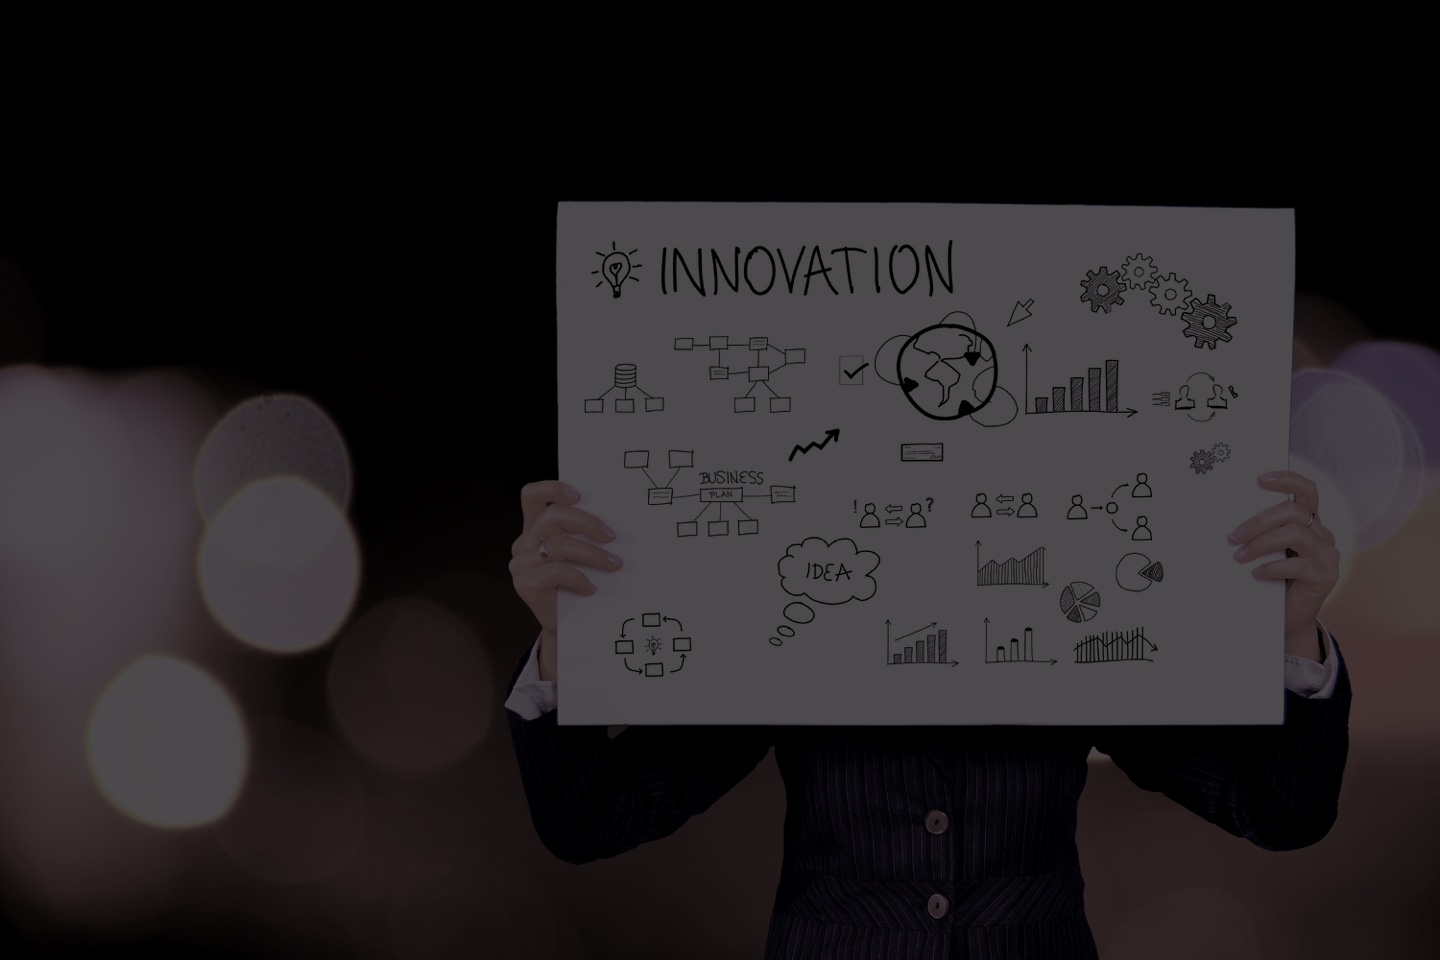 the picture shows a person holding a big canvas for innovation